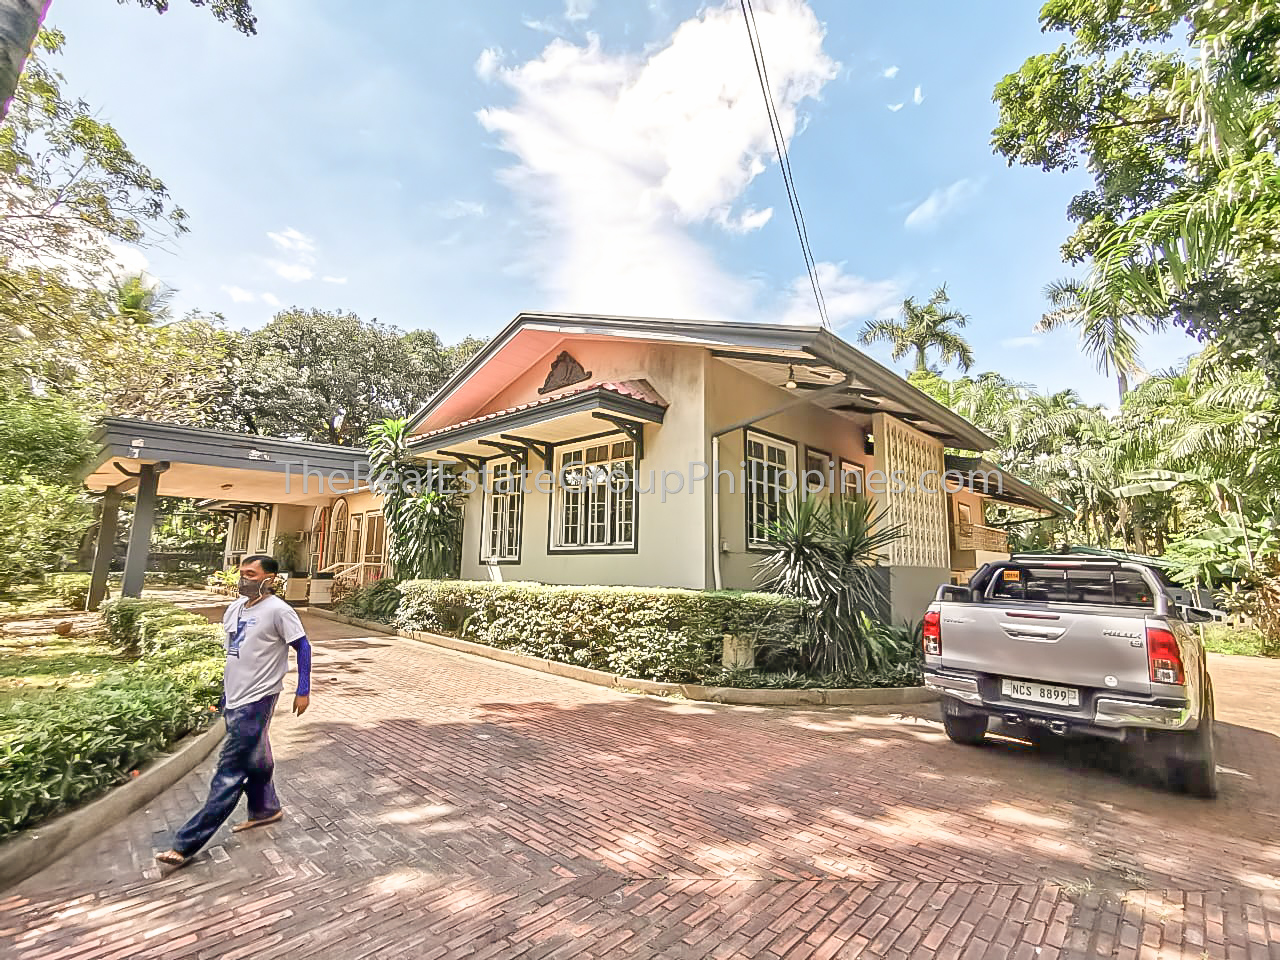 5BR House For Sale, Forbes Park Village, Makati-19